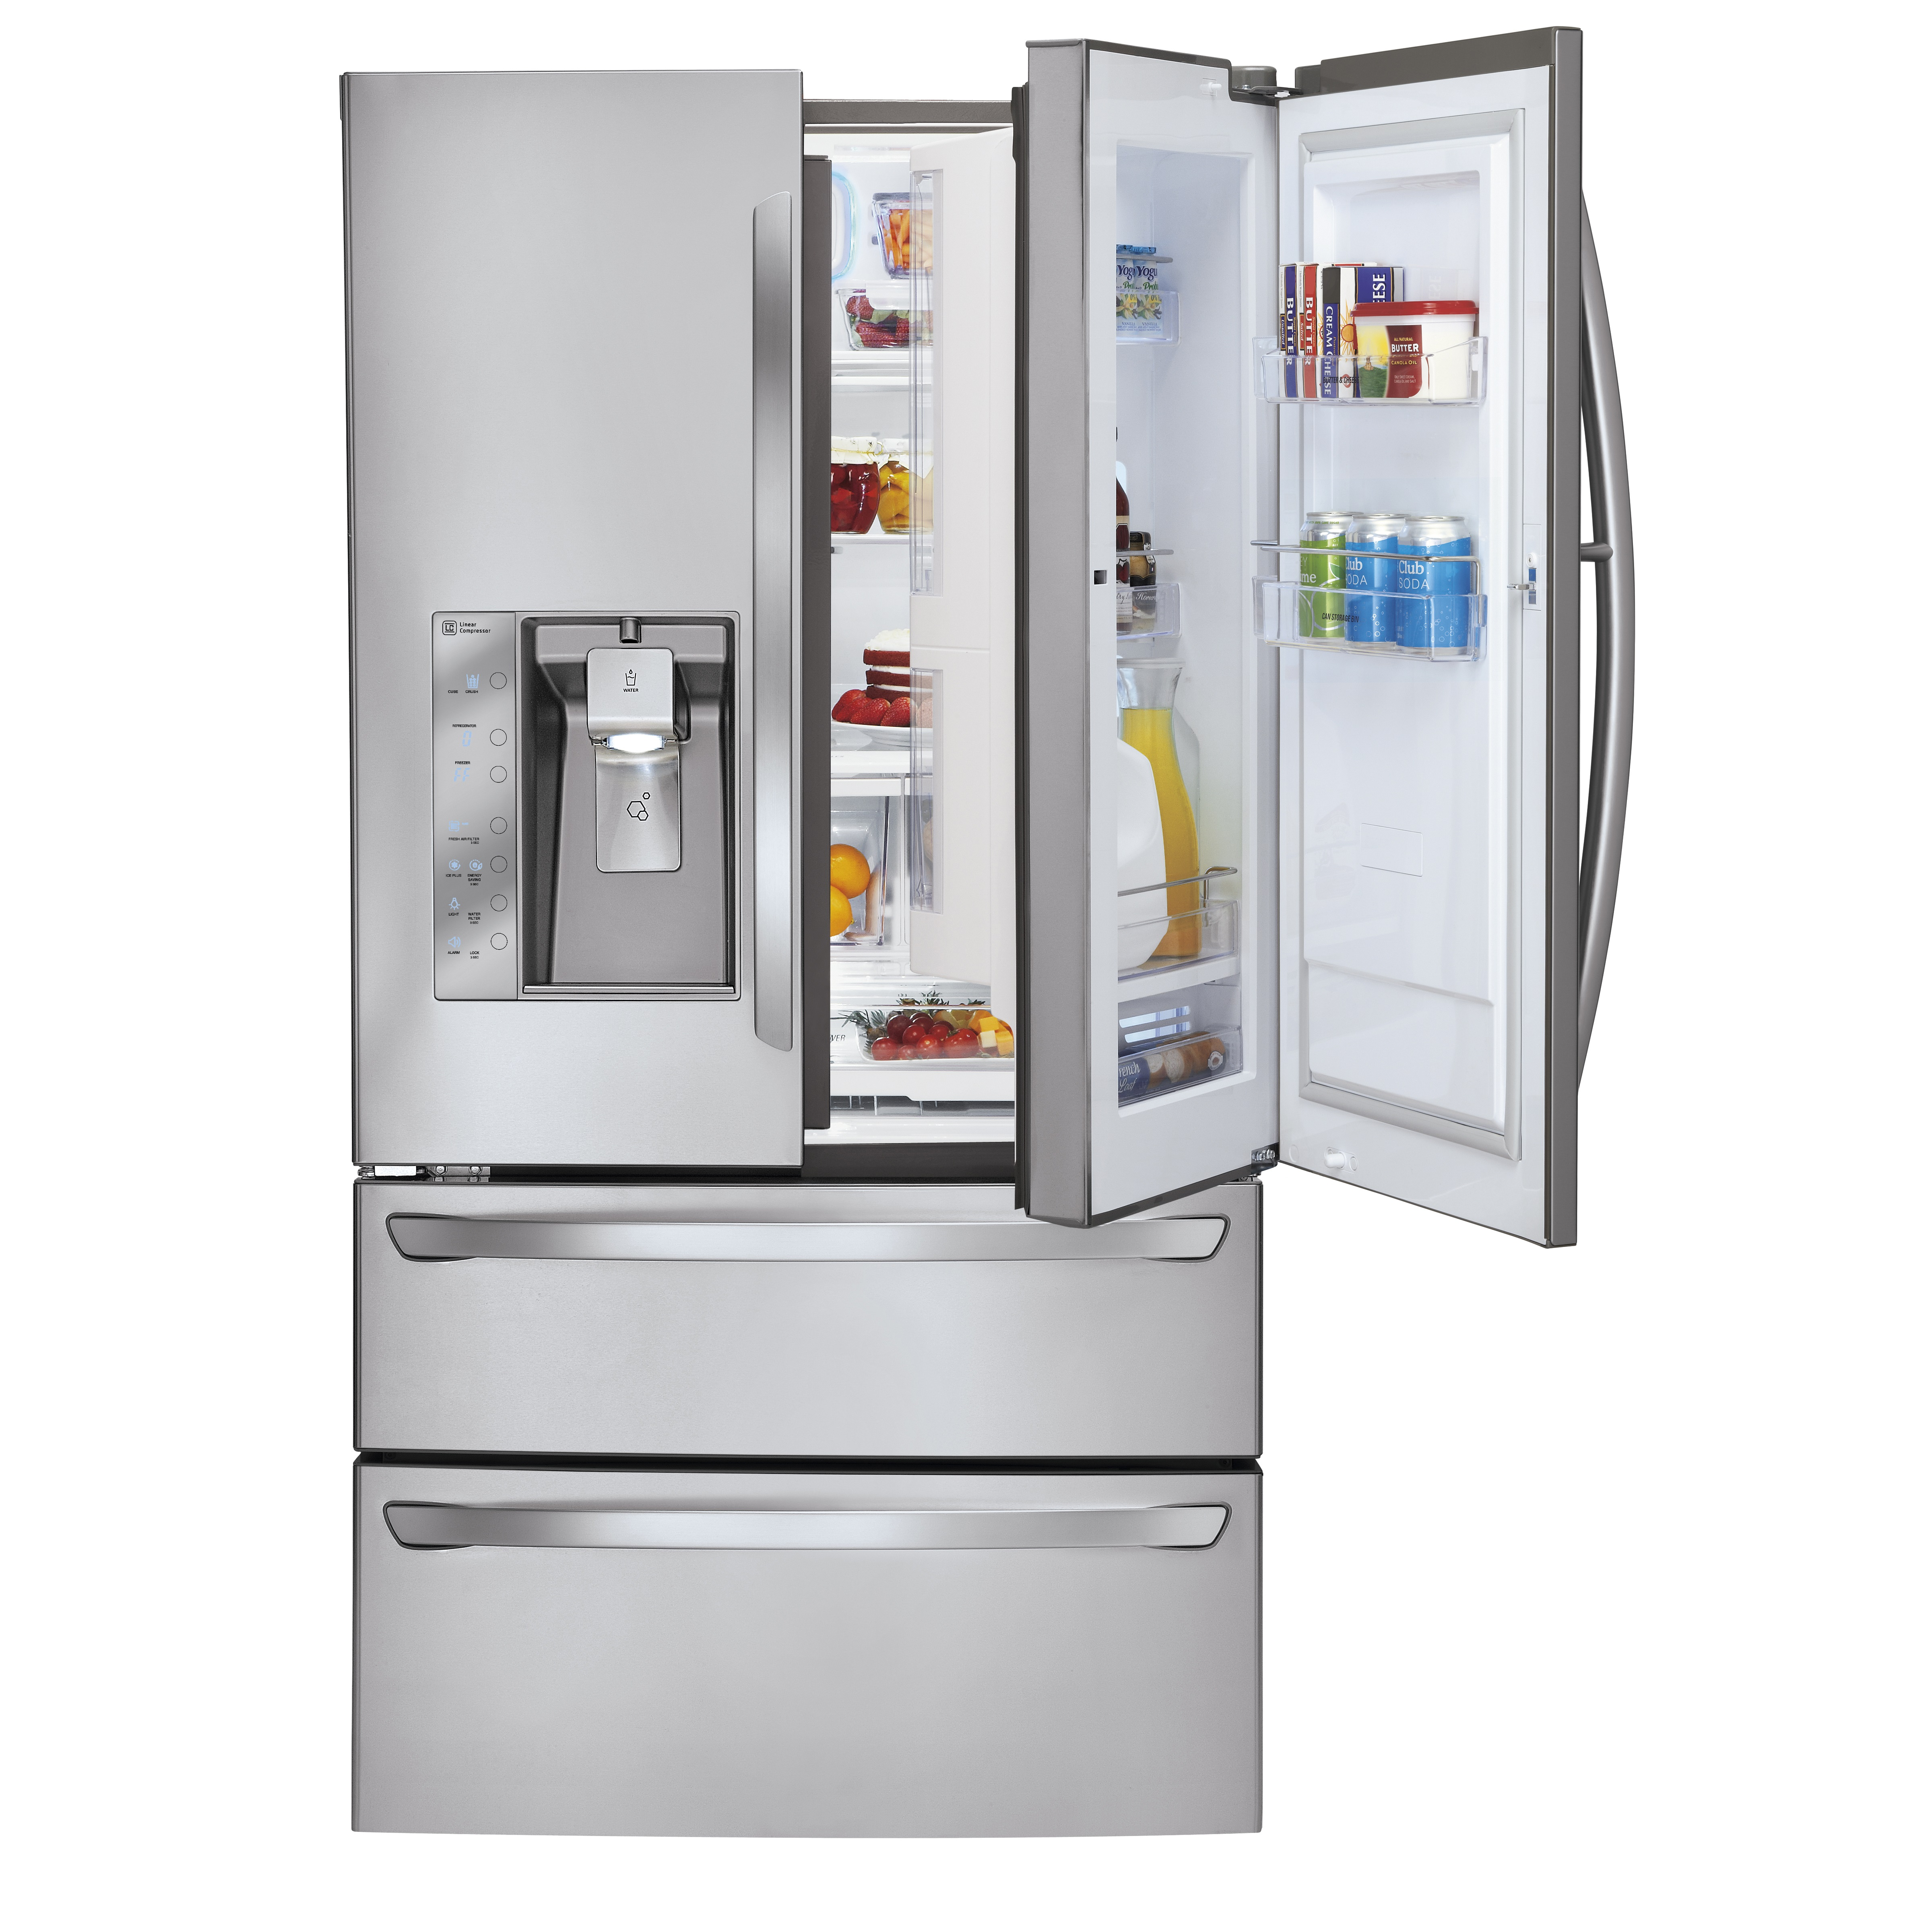 The LG four-door French-Door refrigerator with Door-in-Door feature on the right and ice and water dispenser on the left